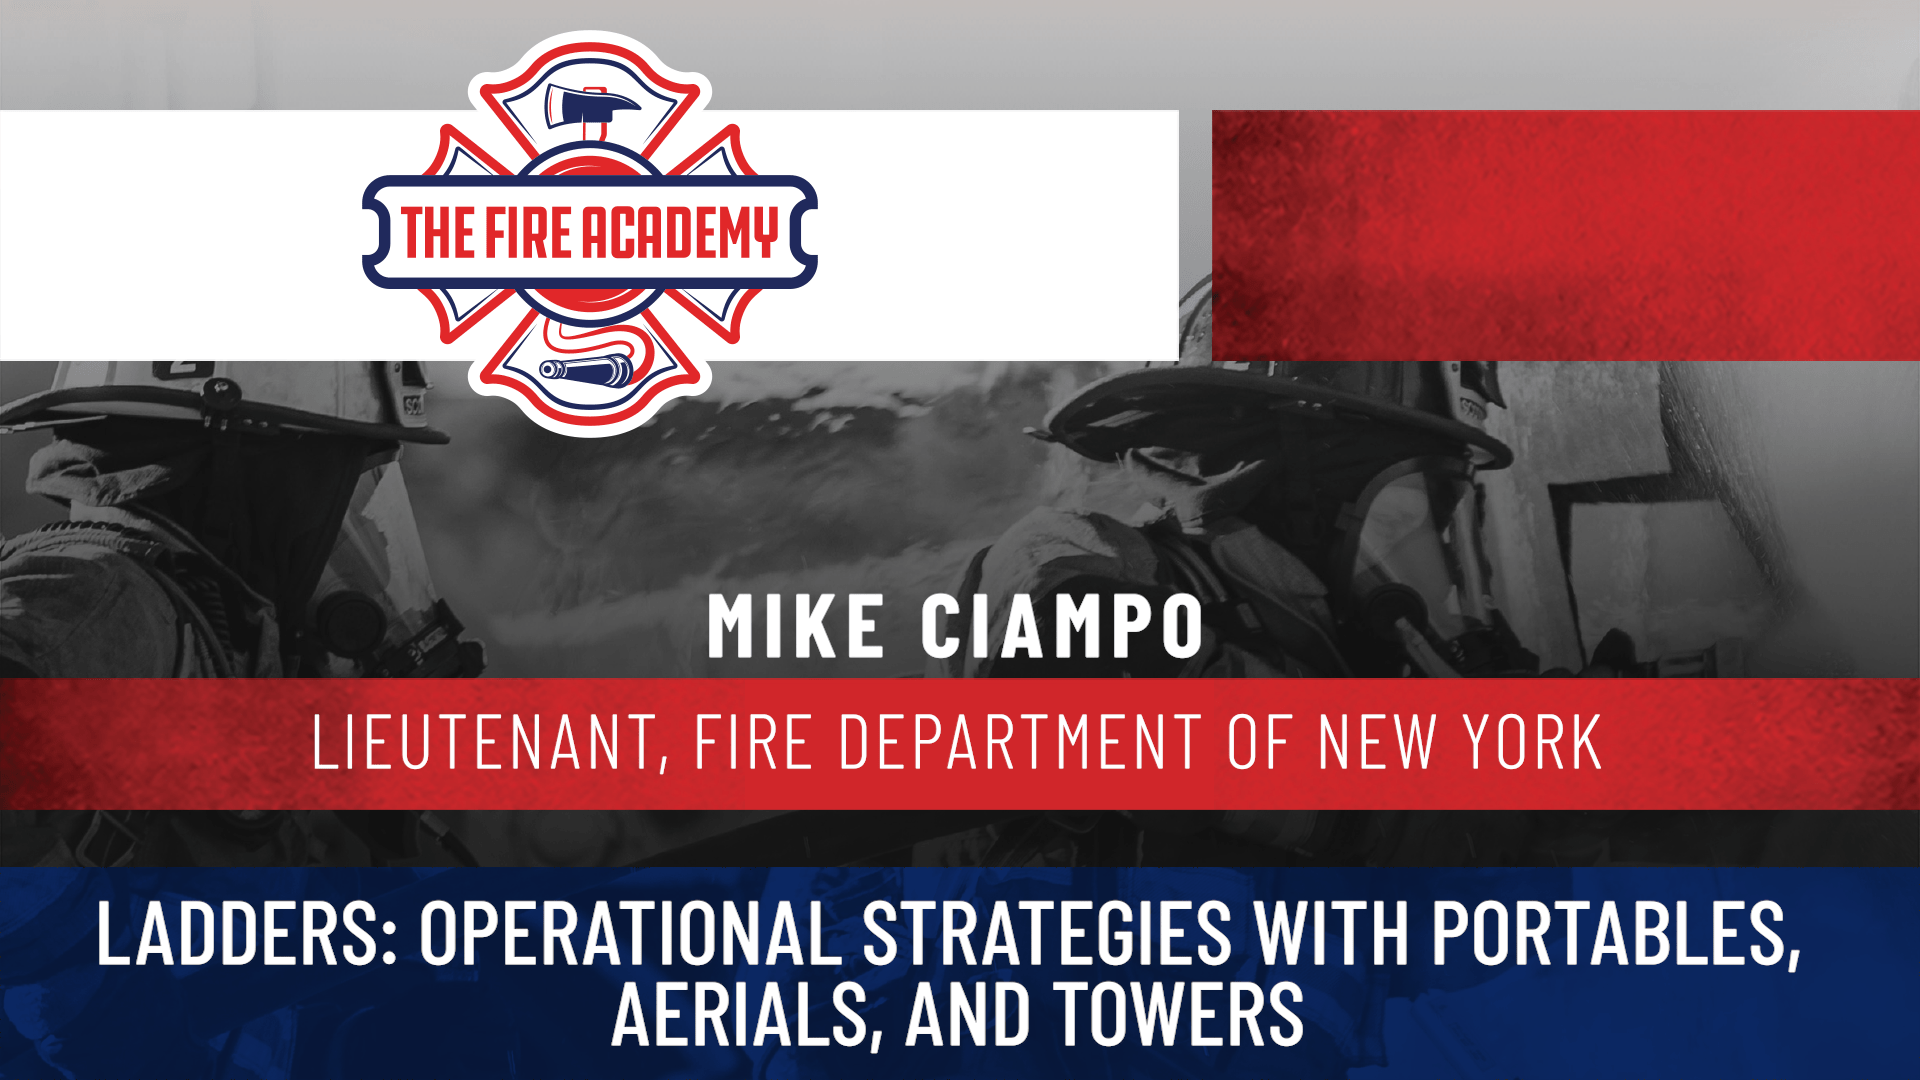 Ladders: Operational Strategies with Portables, Aerials, and Towers